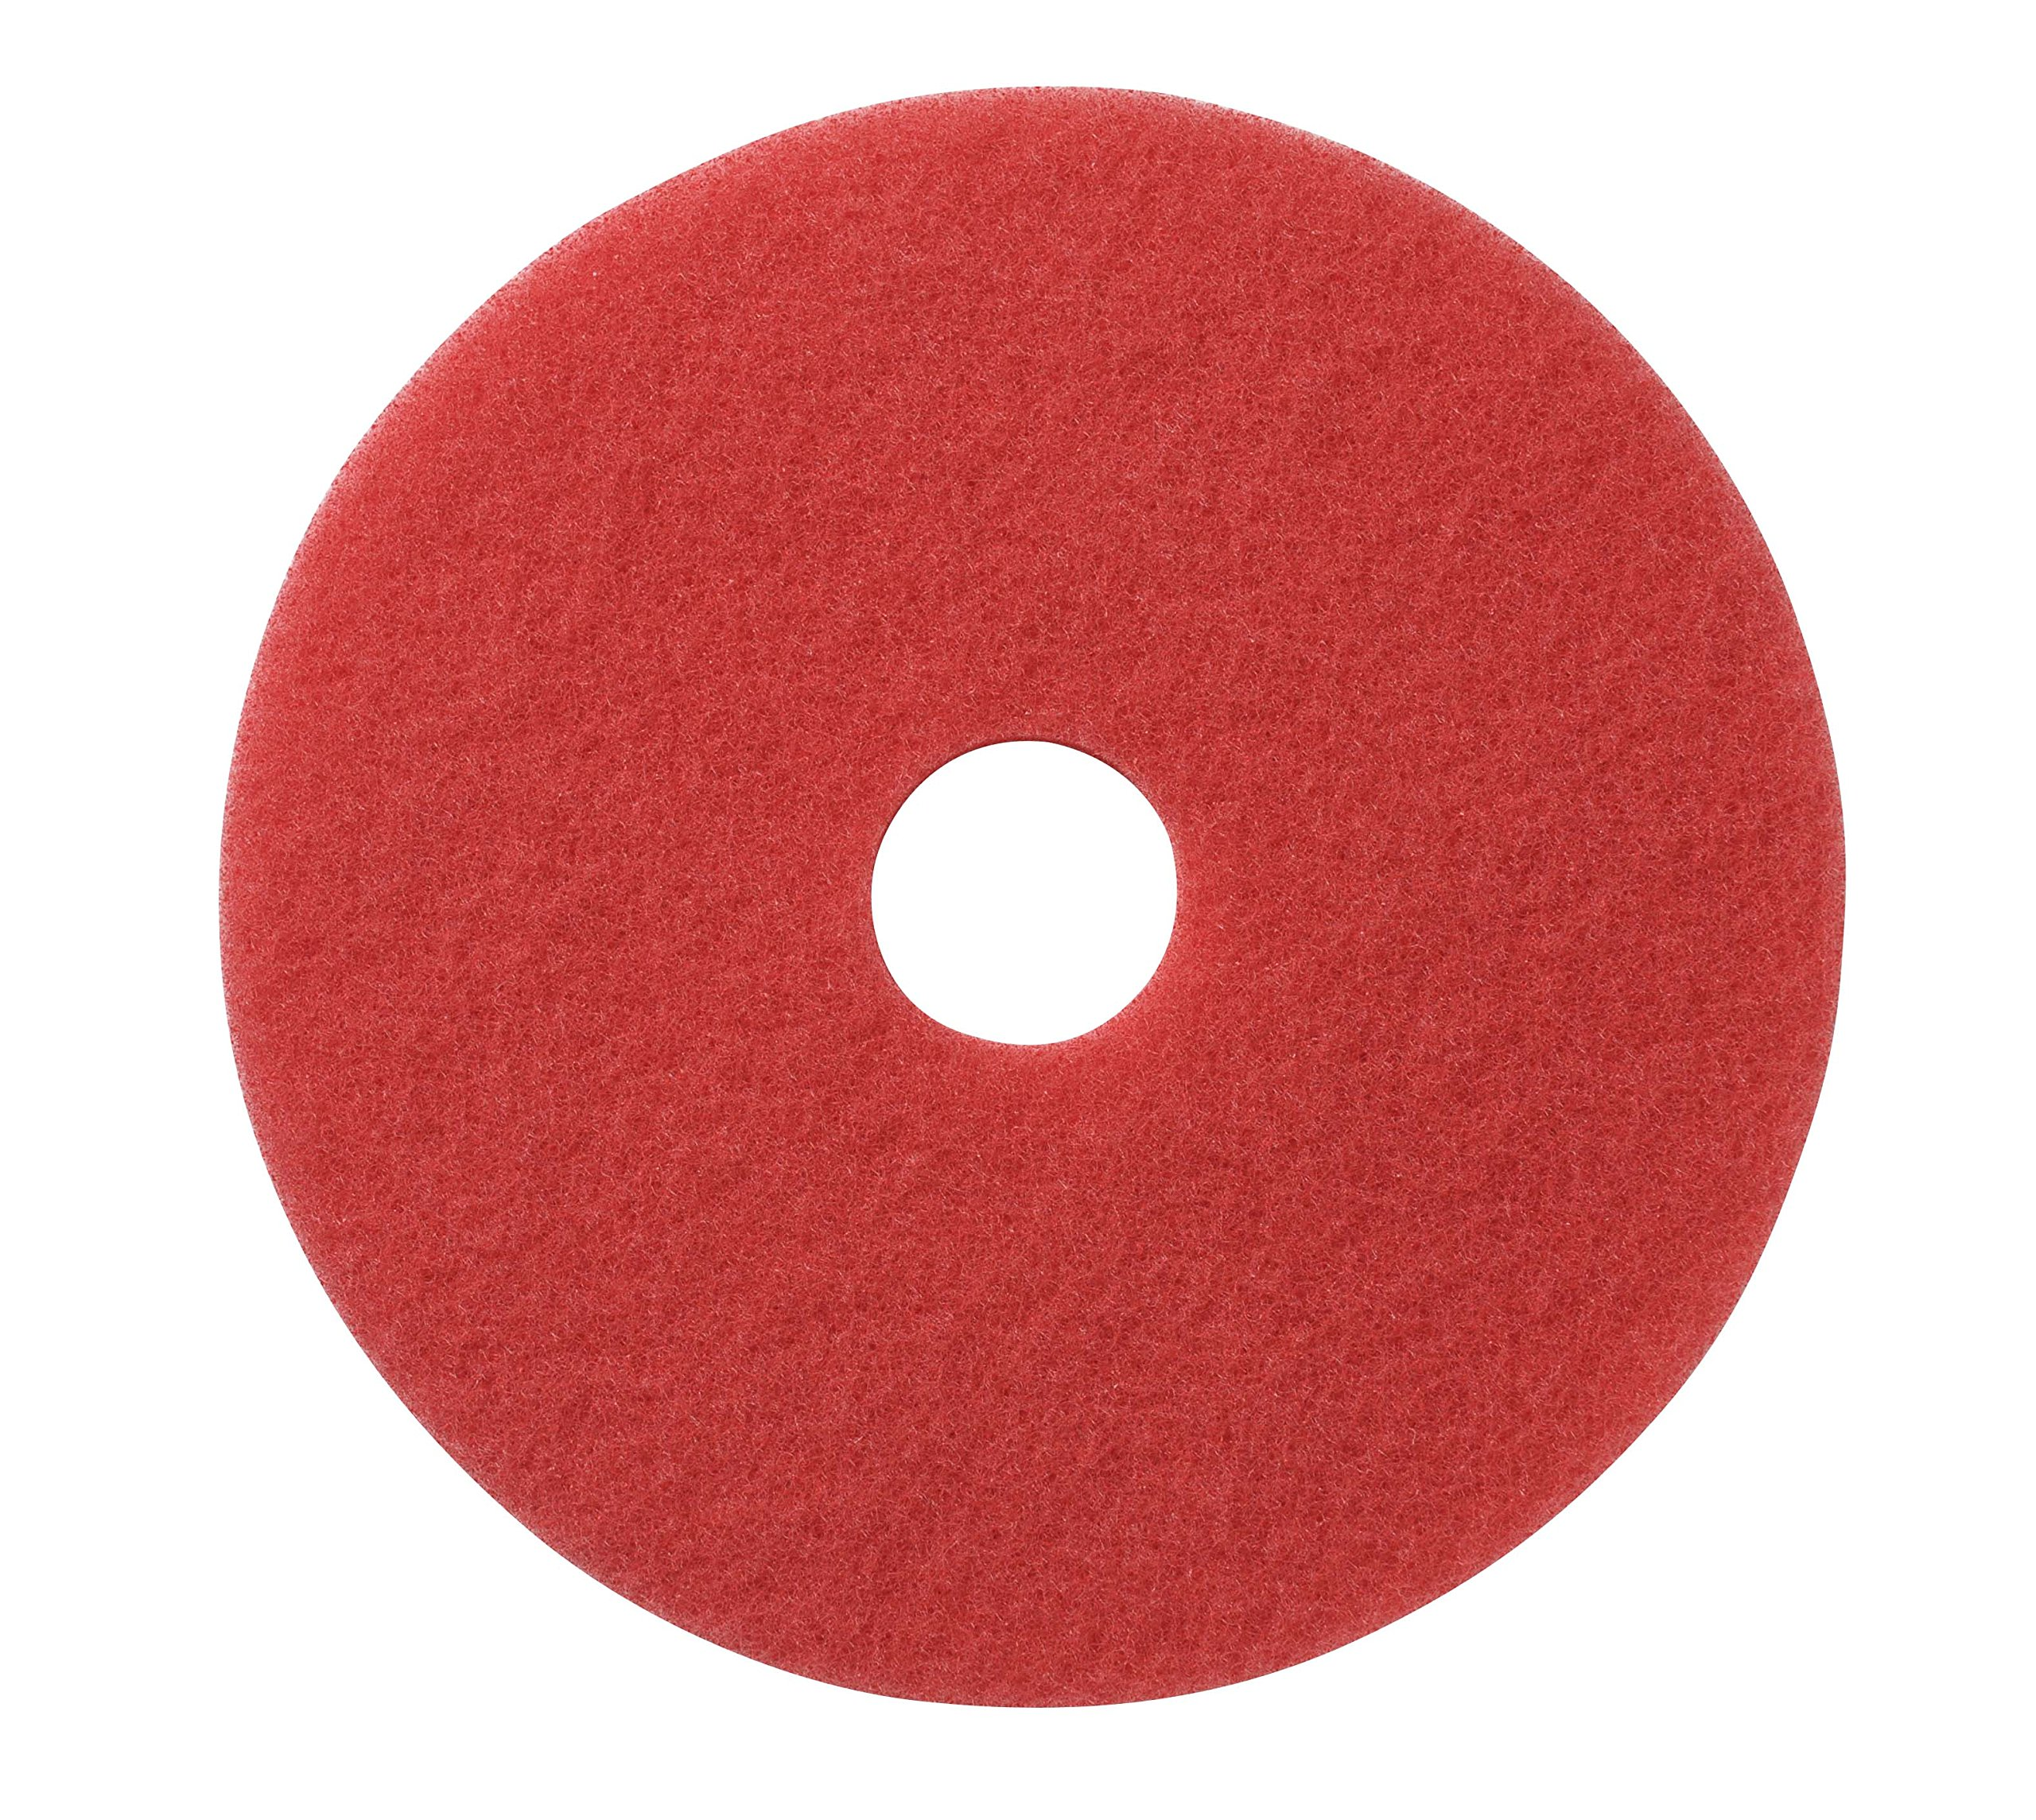 Glit/Microtron 404420 Daily Cleaning and Buffing Pad, 20'', Red (Pack of 5) by Glit / Microtron